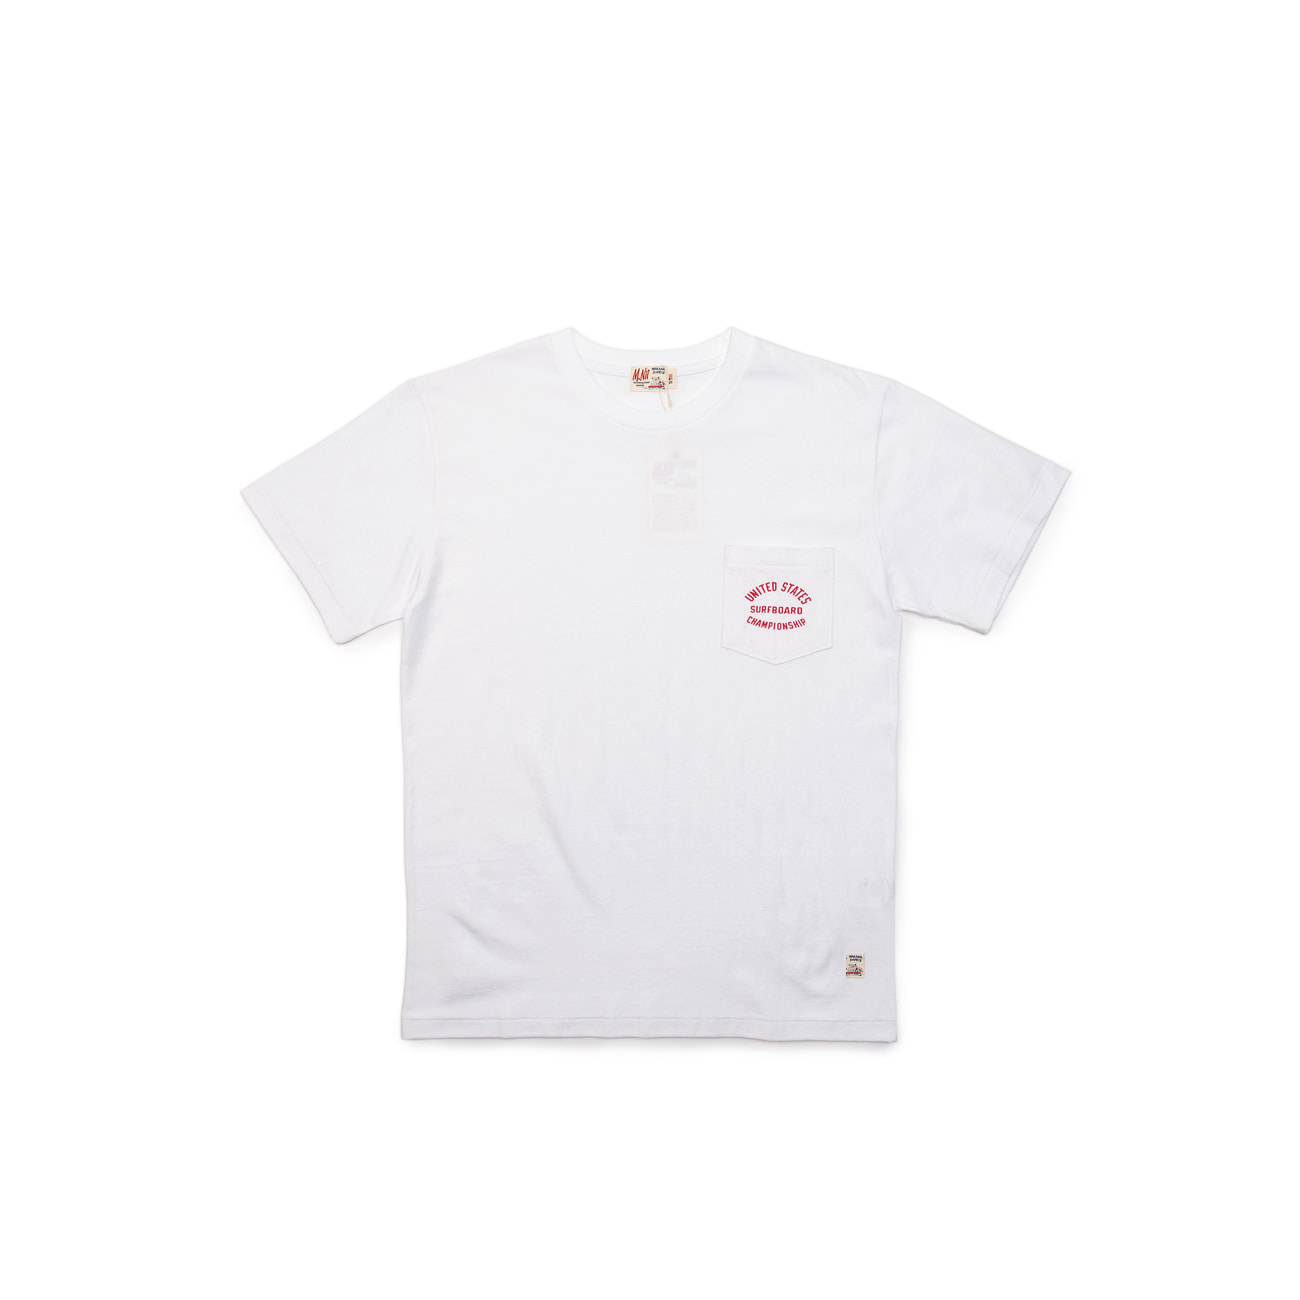 Surfboard Pocket Tee